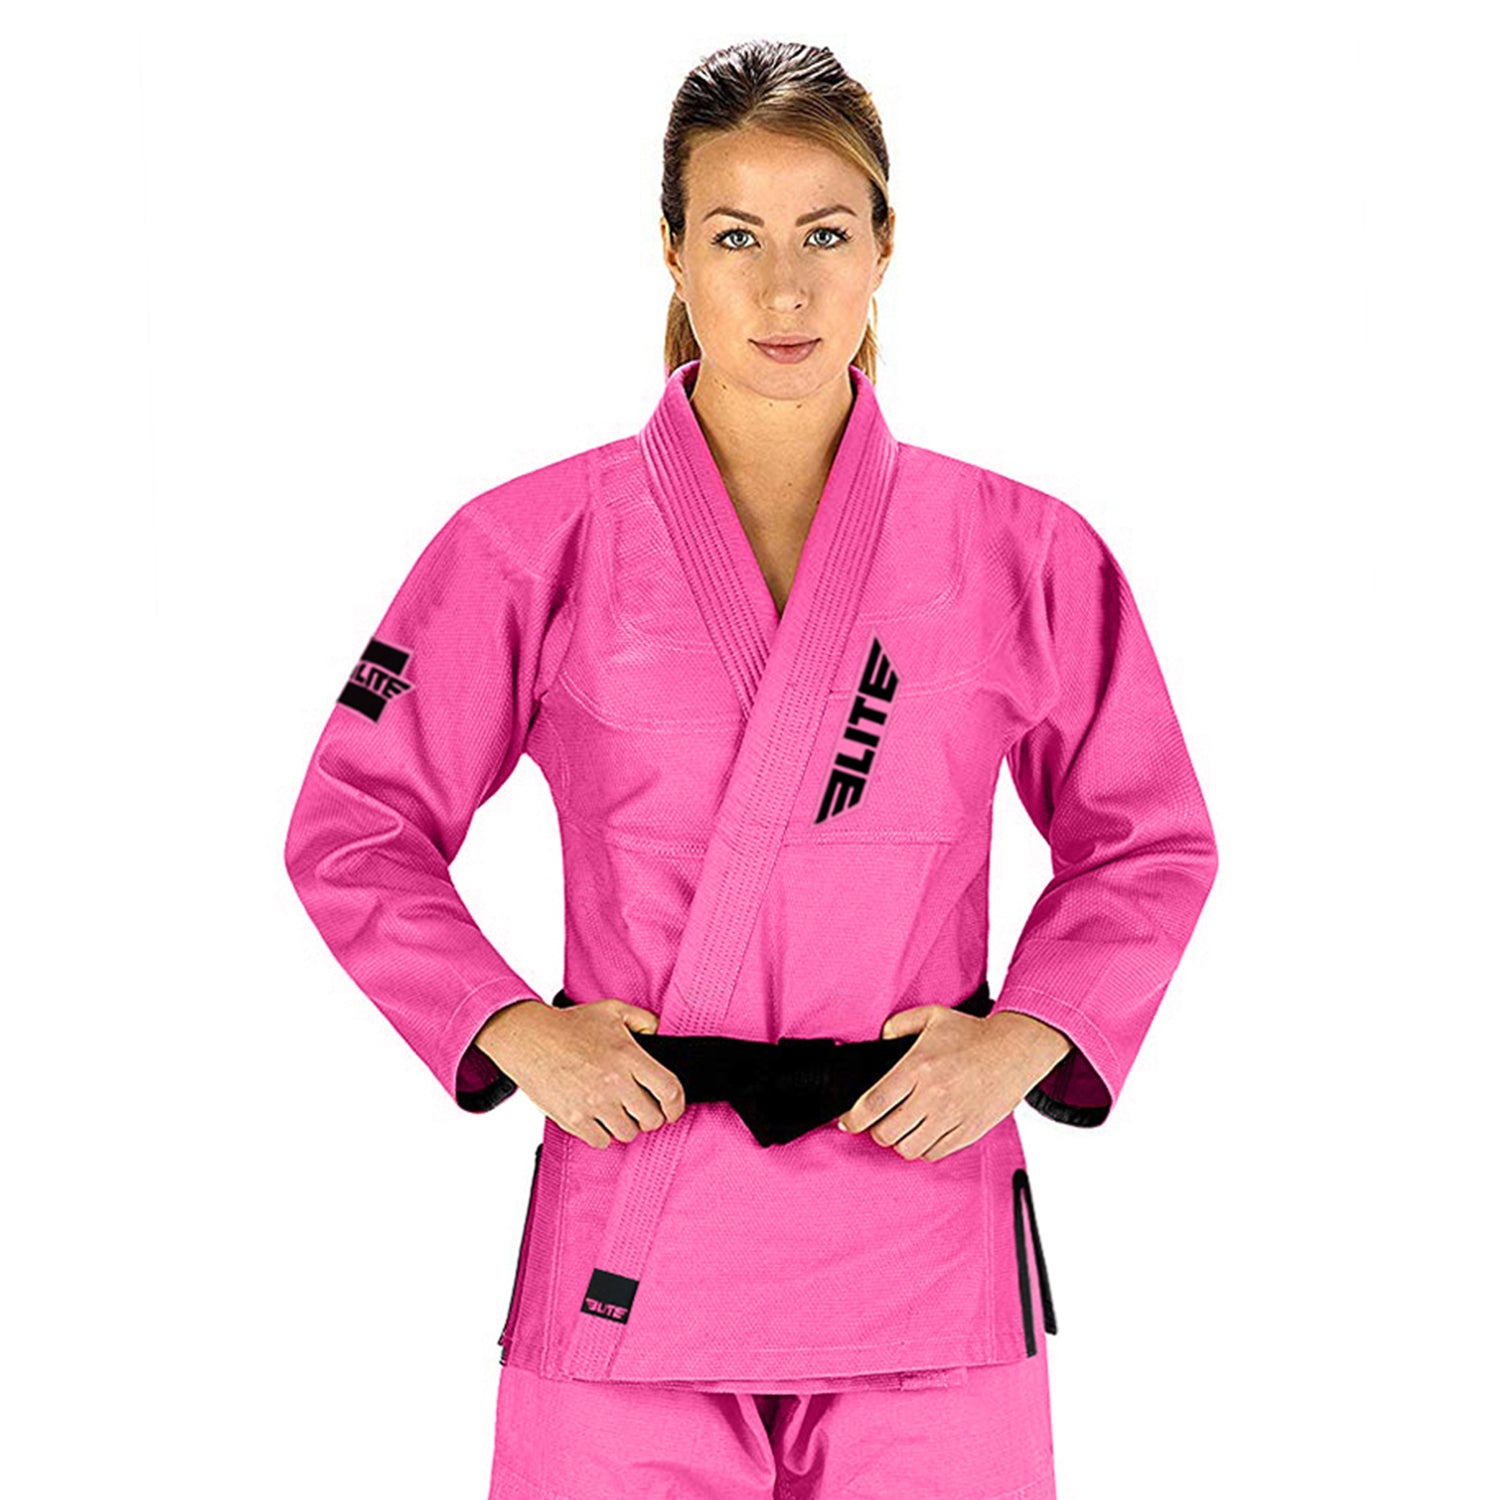 Elite Sports Ultra Light Preshrunk Pink Adult Brazilian Jiu Jitsu BJJ Gi With Free White Belt